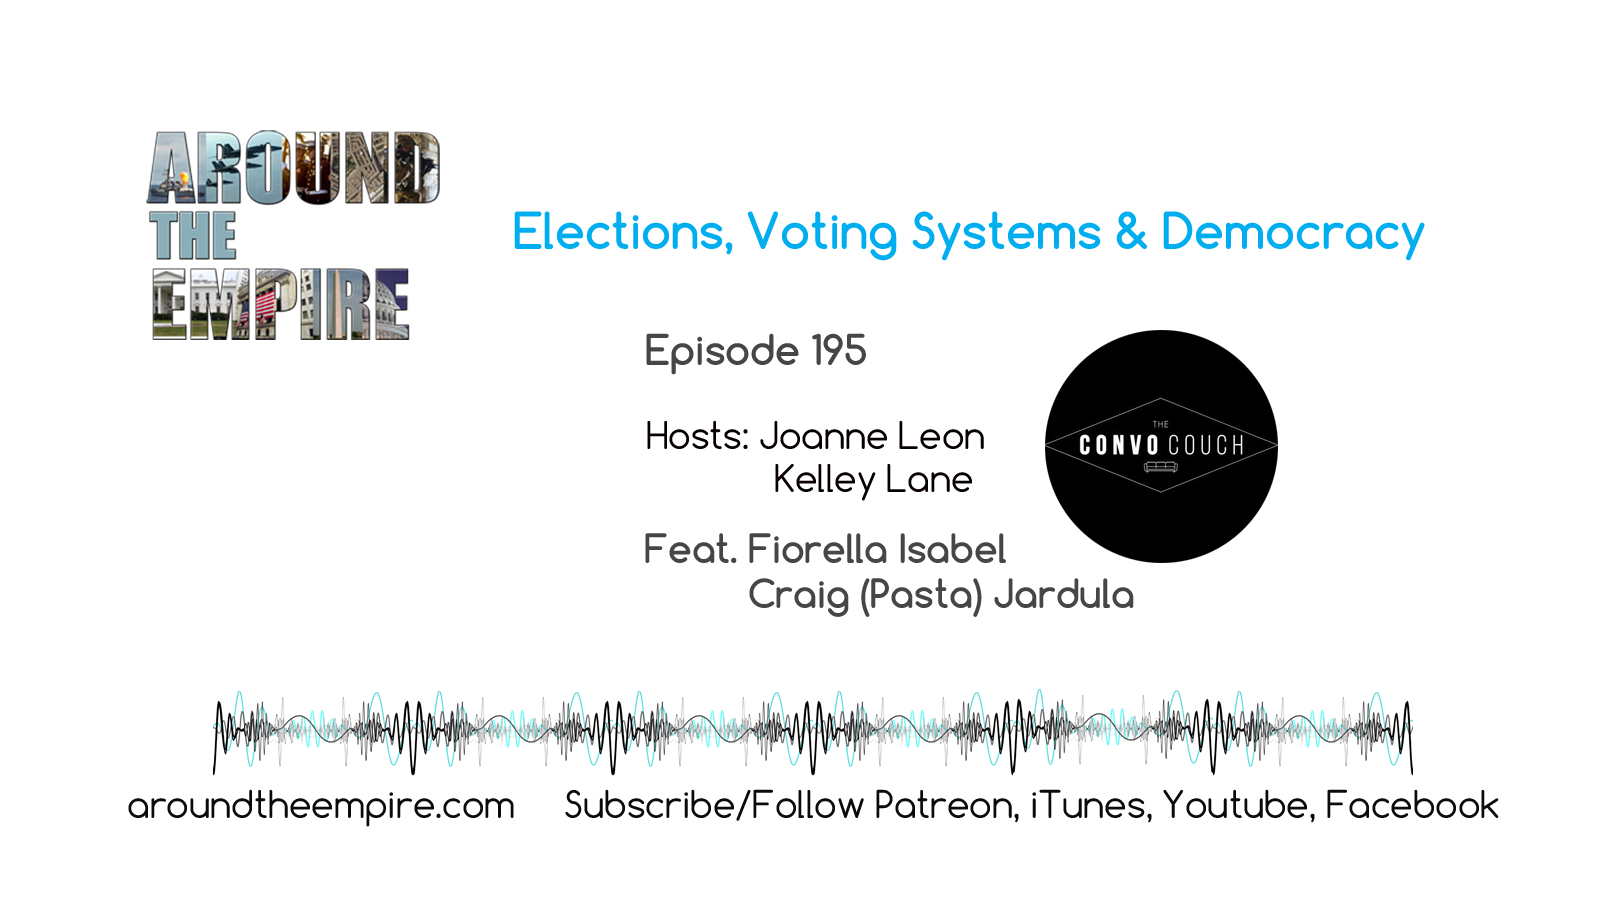 Ep 195 Elections, Voting Systems & Democracy feat Fiorella Isabel & Craig (Pasta) Jardula